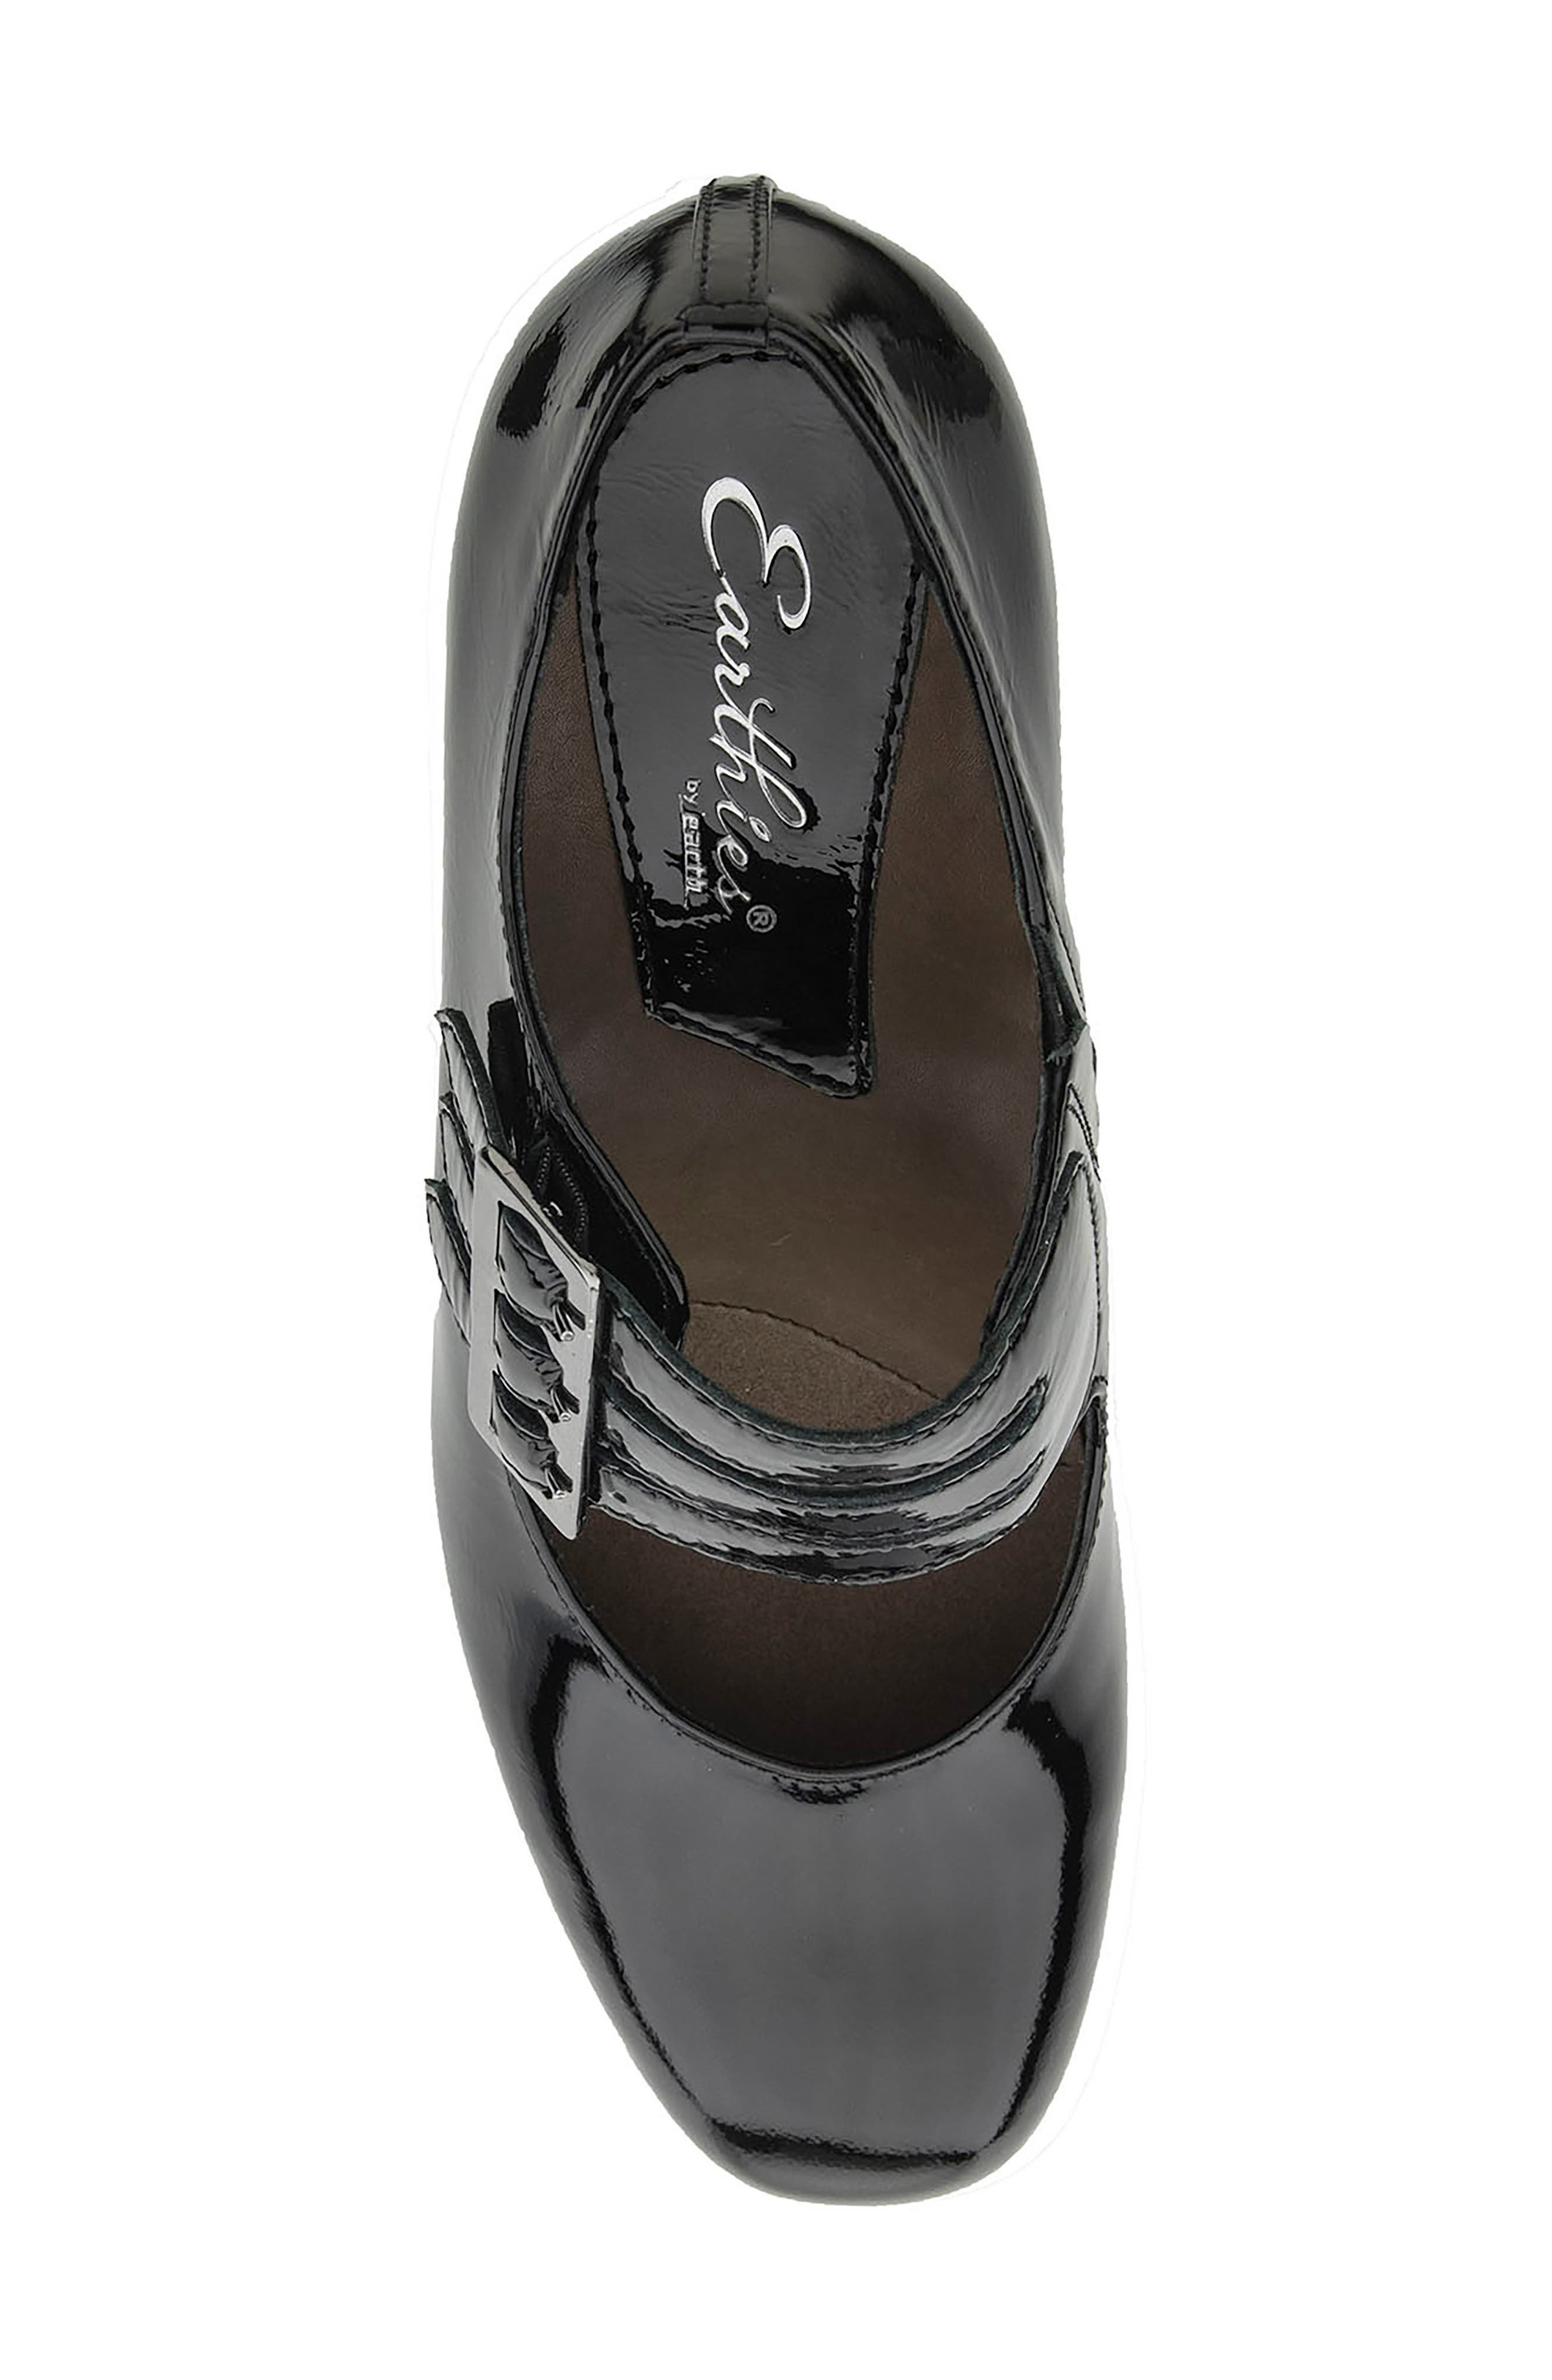 Fortuna Mary Jane Pump,                             Alternate thumbnail 5, color,                             Black Patent Leather